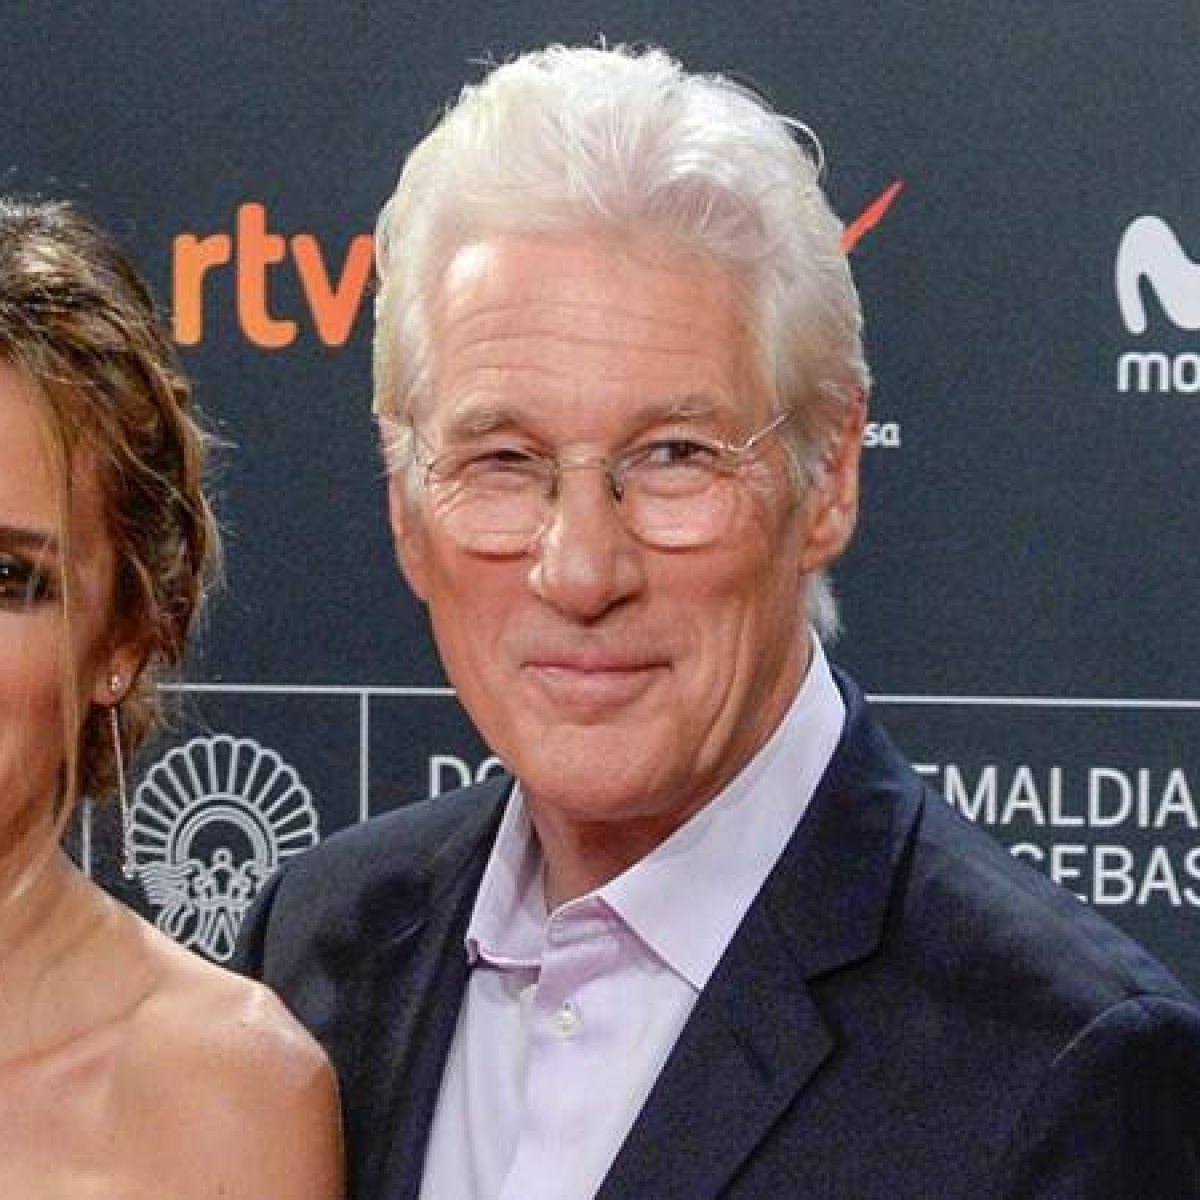 Richard Gere set to become father again at 70